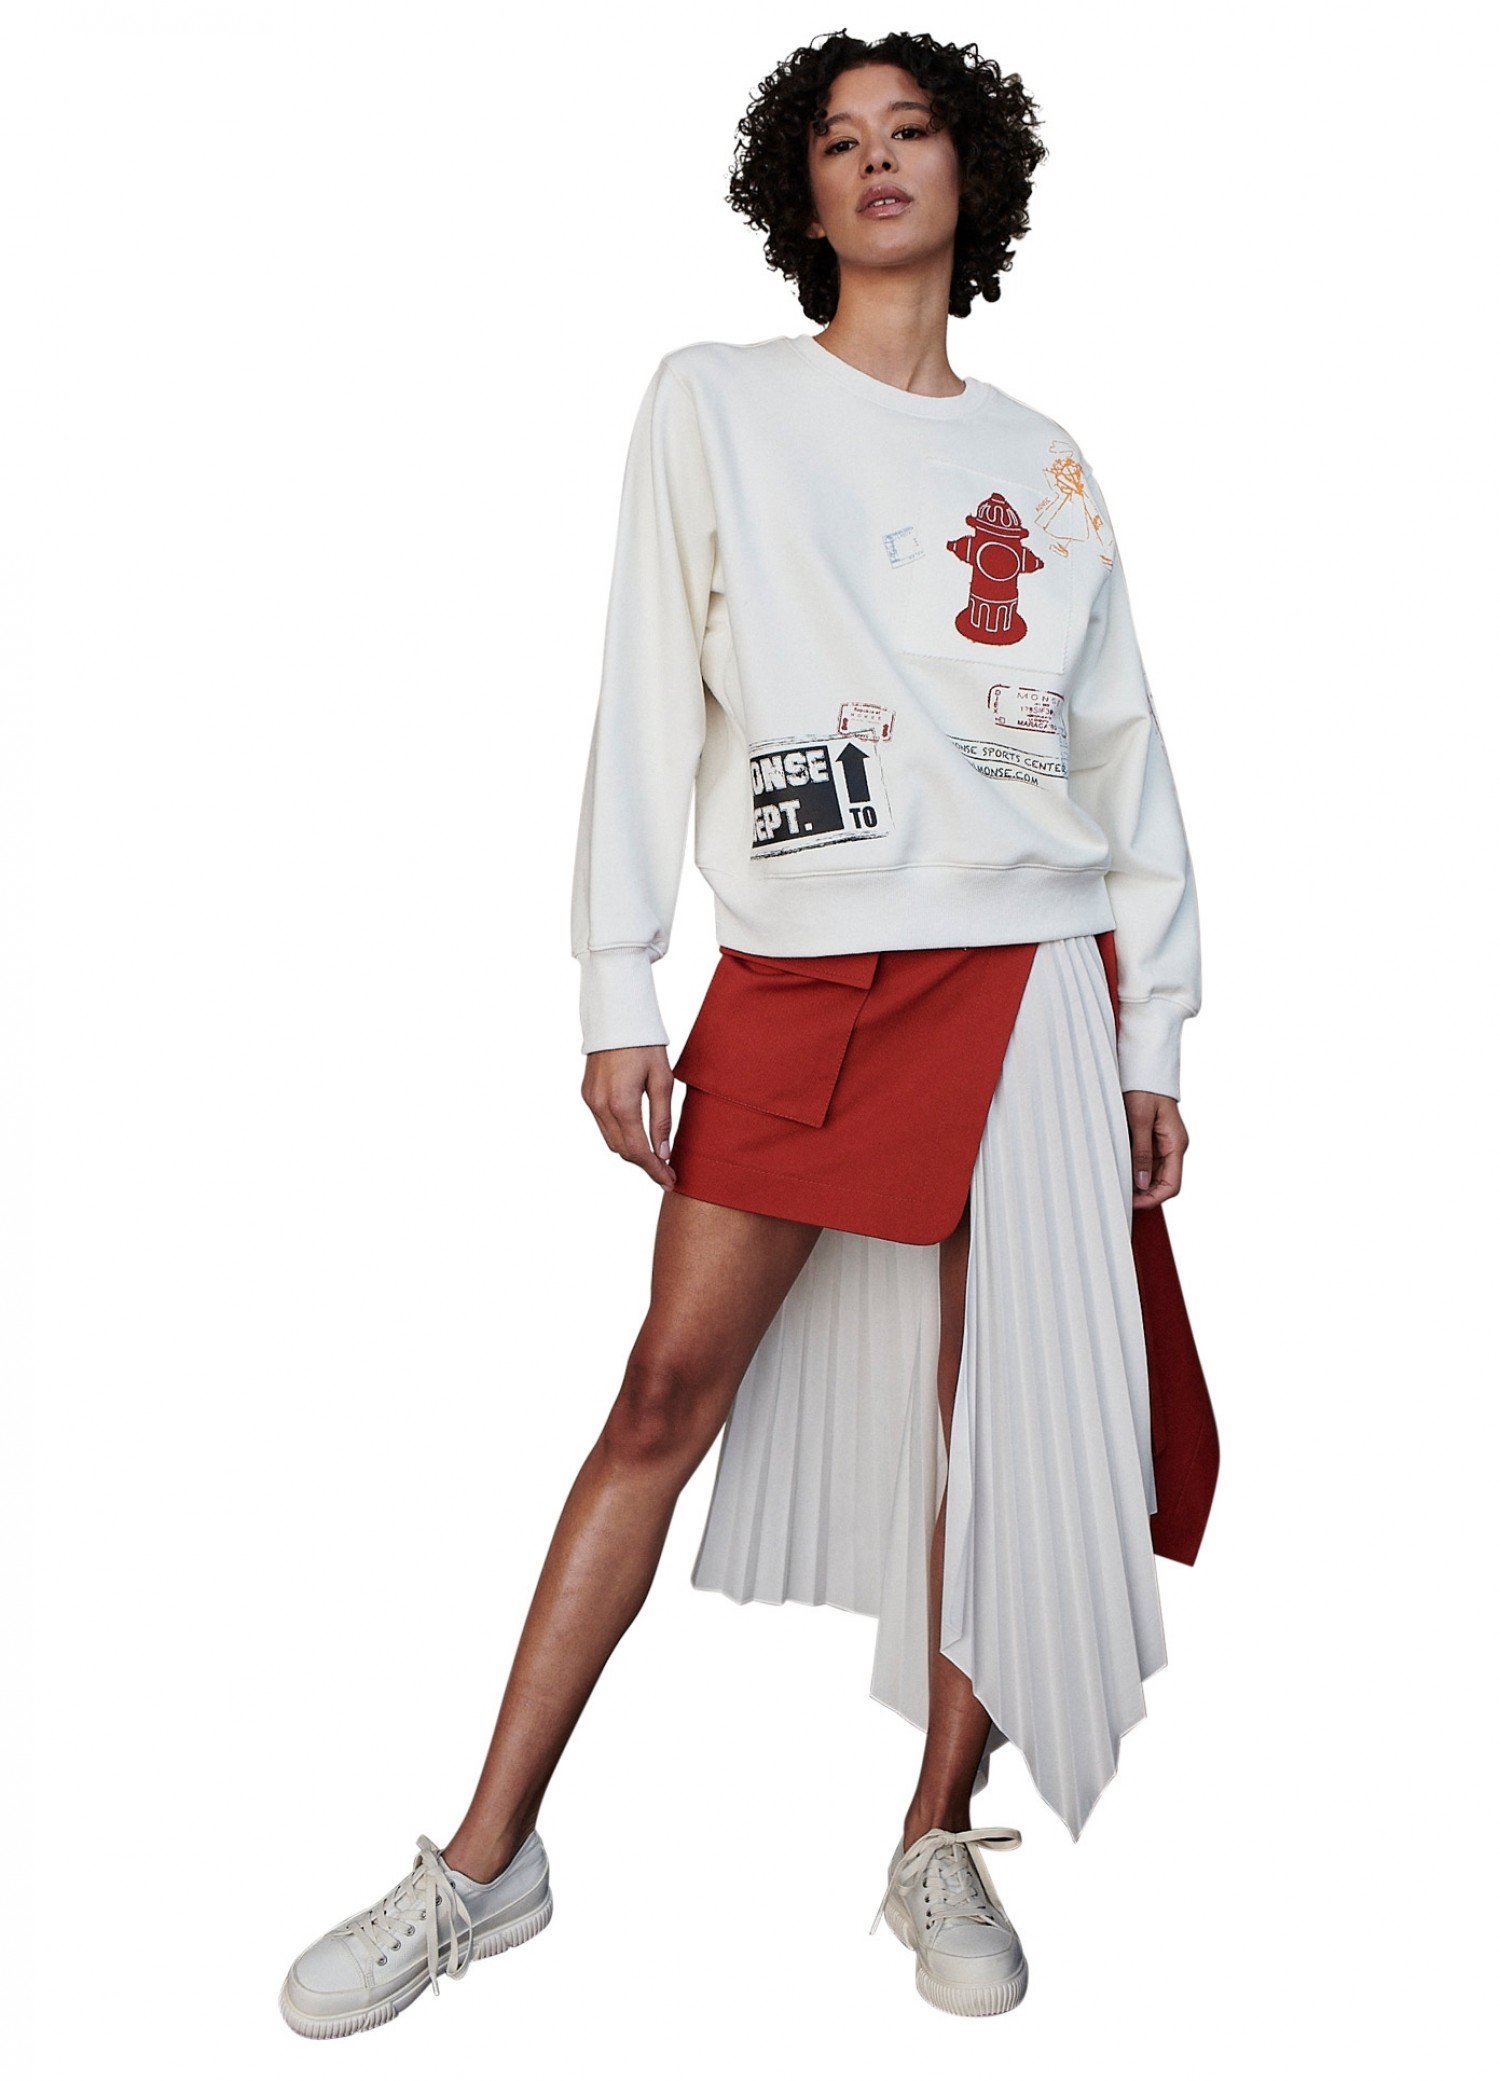 MONSE Scrapbook Pullover Sweatshirt in Ivory on Model Full Front View